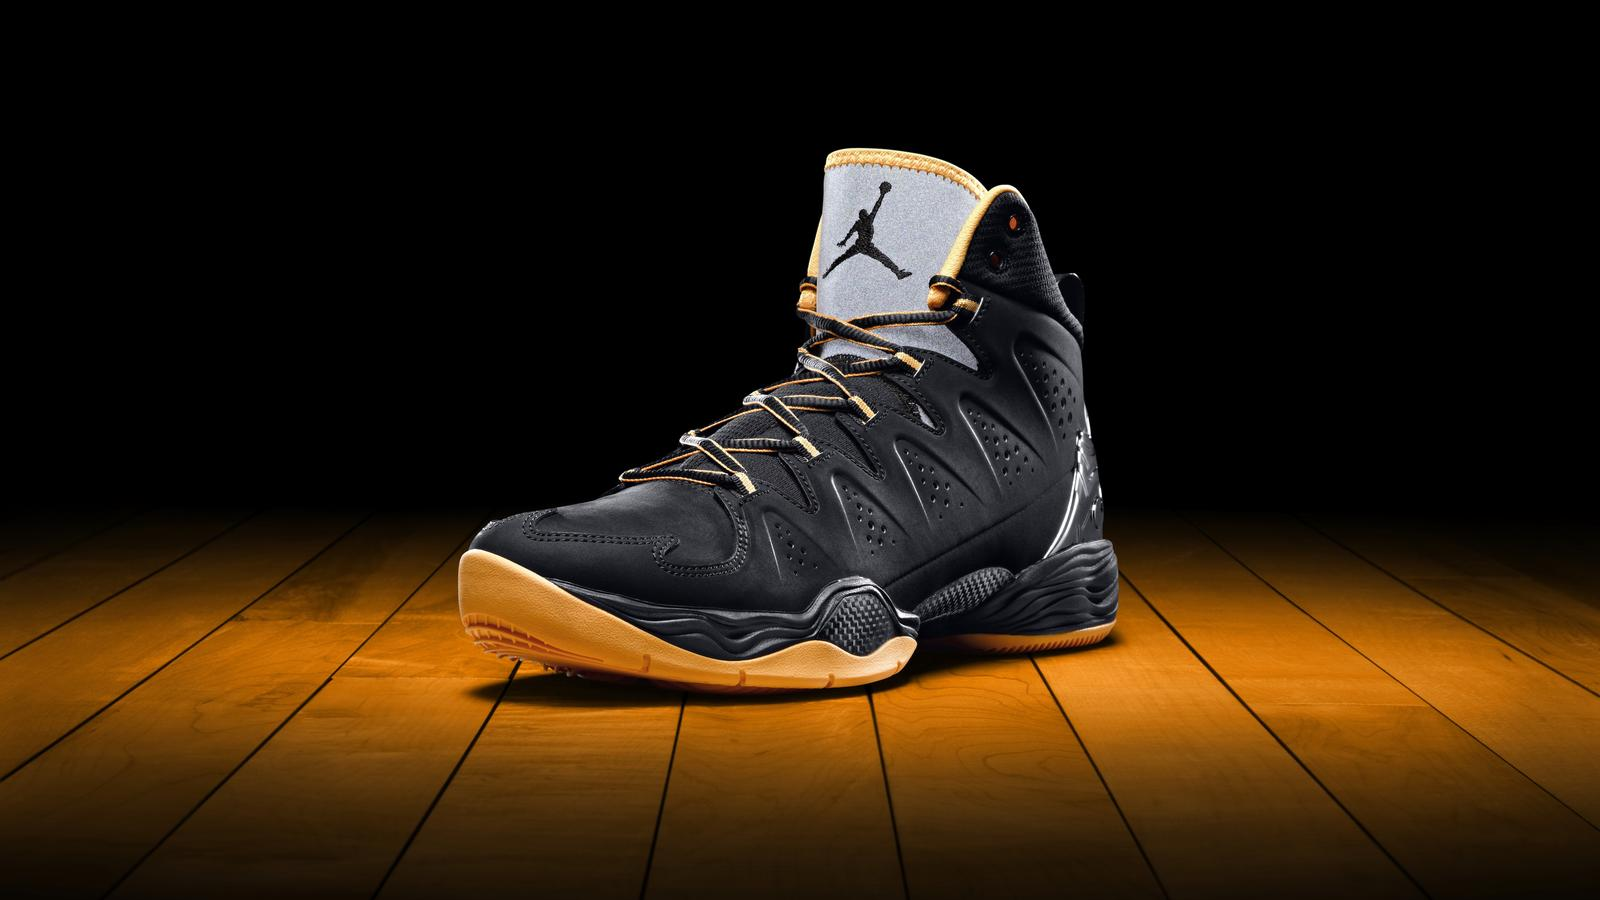 Jordan Playoff Series- Melo M10